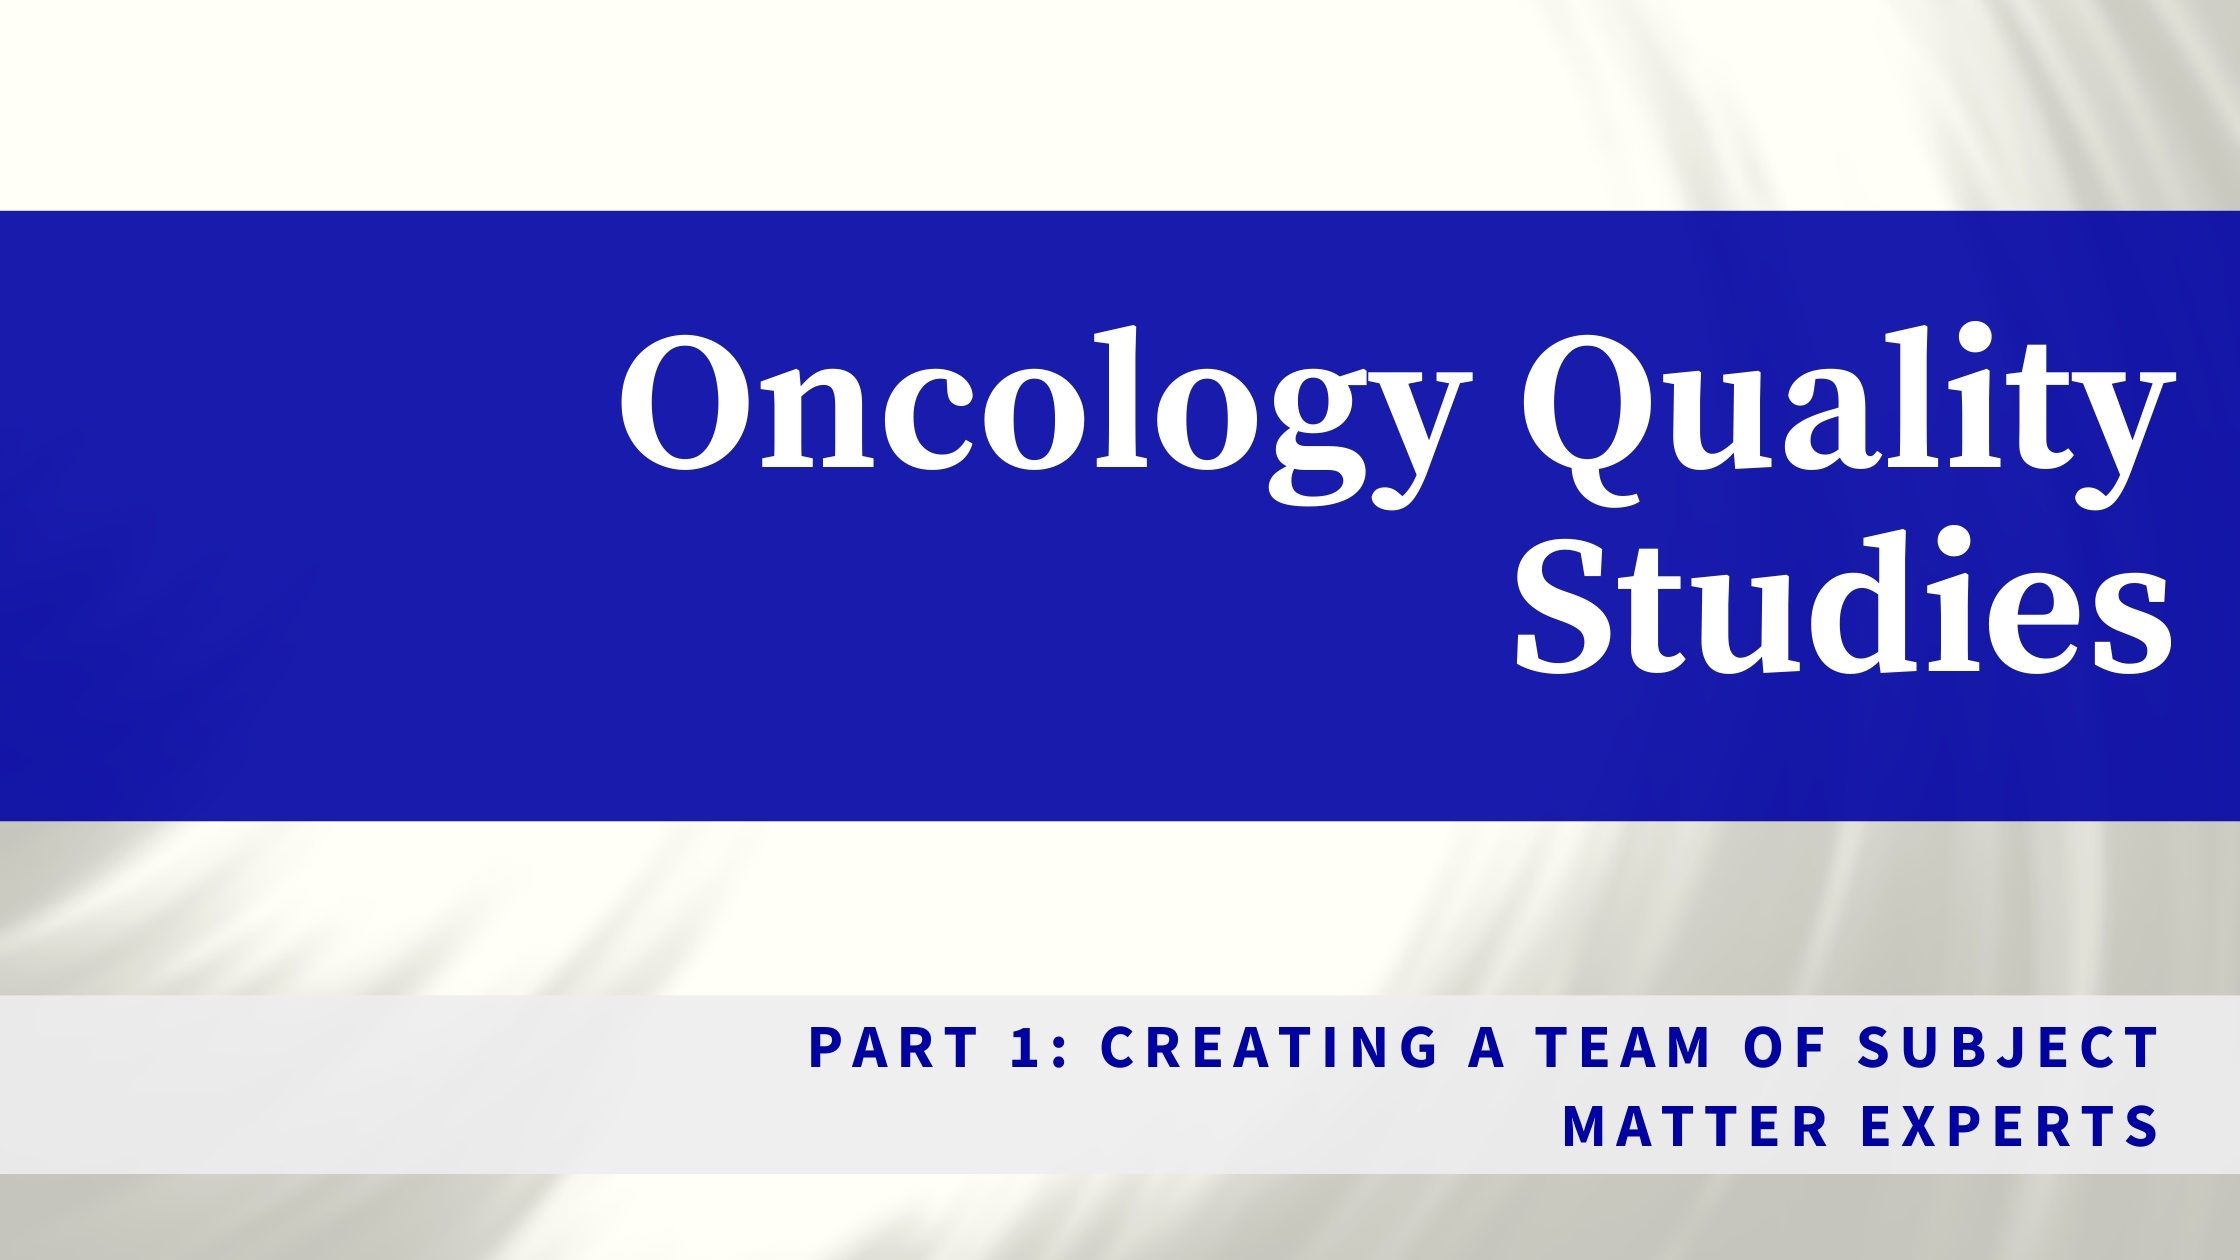 Oncology Quality Studies: Creating a Team of Subject Matter Experts